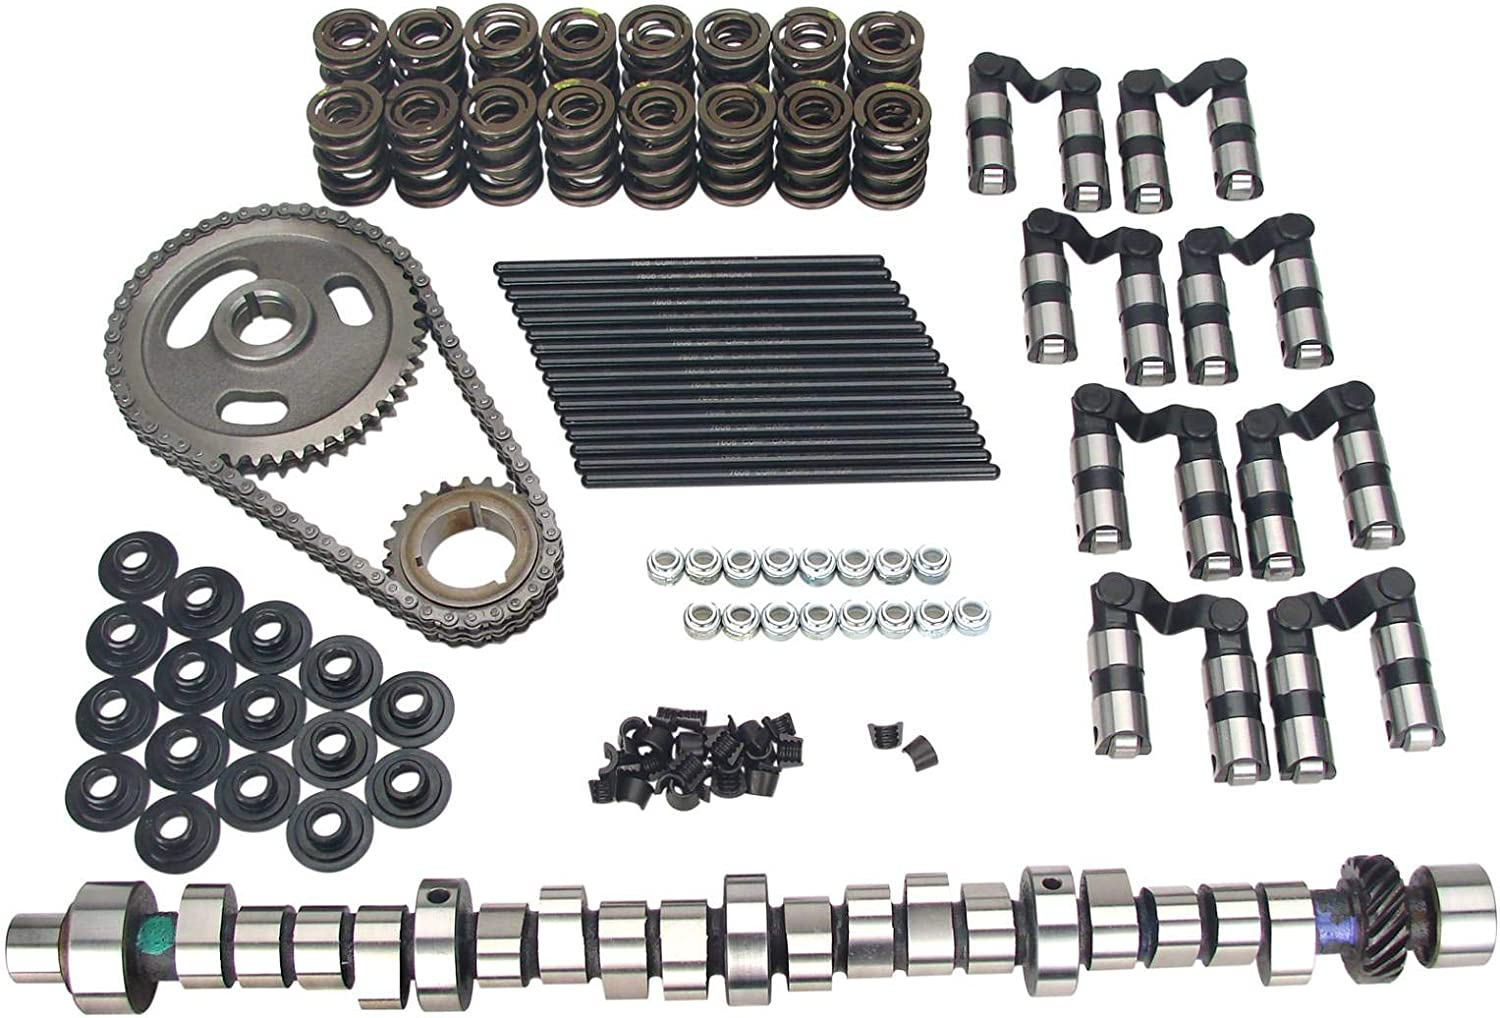 COMP Cams CL20-600-9 Thumpr 227//241 Hydraulic Roller Cam and Lifter Kit for Chrysler 273-360